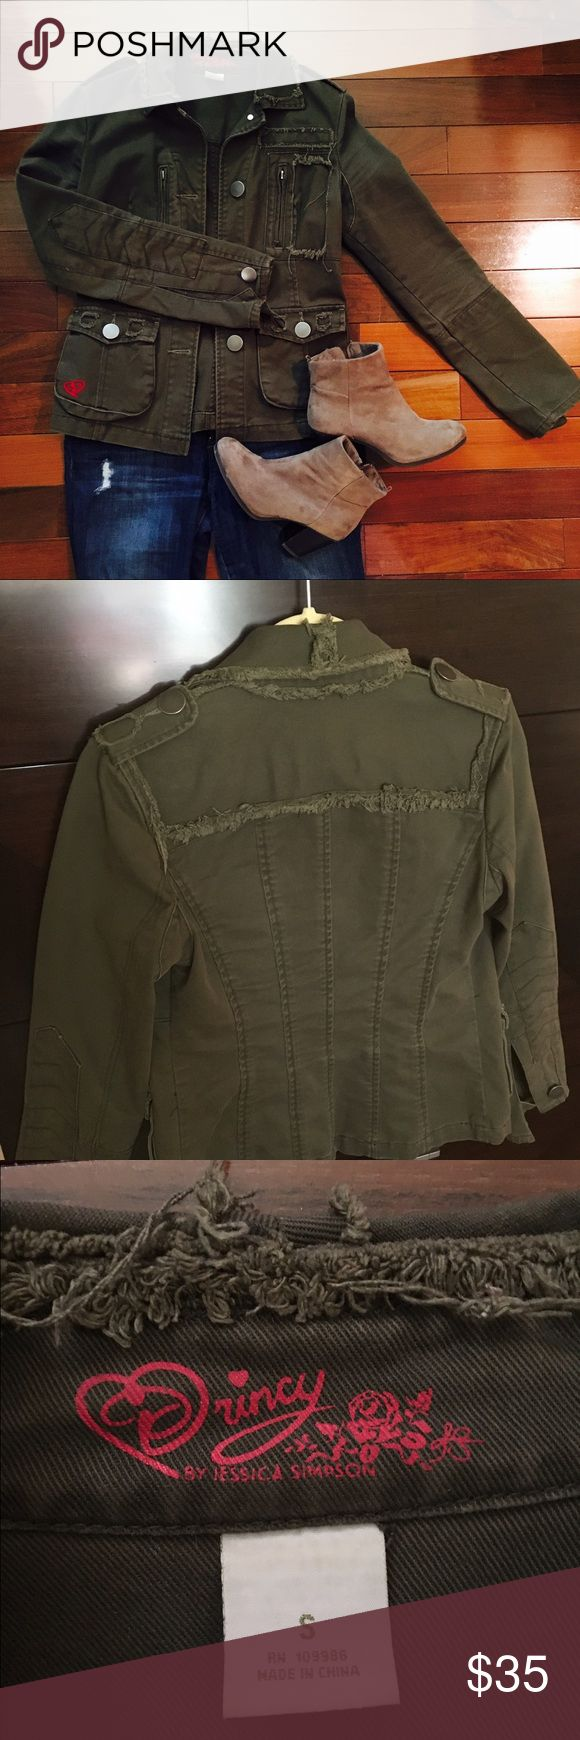 Quincy by Jessica Simpson green military jacket Super cute green military jacket by Jessica Simpson. This is a small and fits a little narrow in the shoulders. This is a thick quality fabric and will be a great addition to any wardrobe! The look is worn, but in like new condition. Jessica Simpson Jackets & Coats Jean Jackets